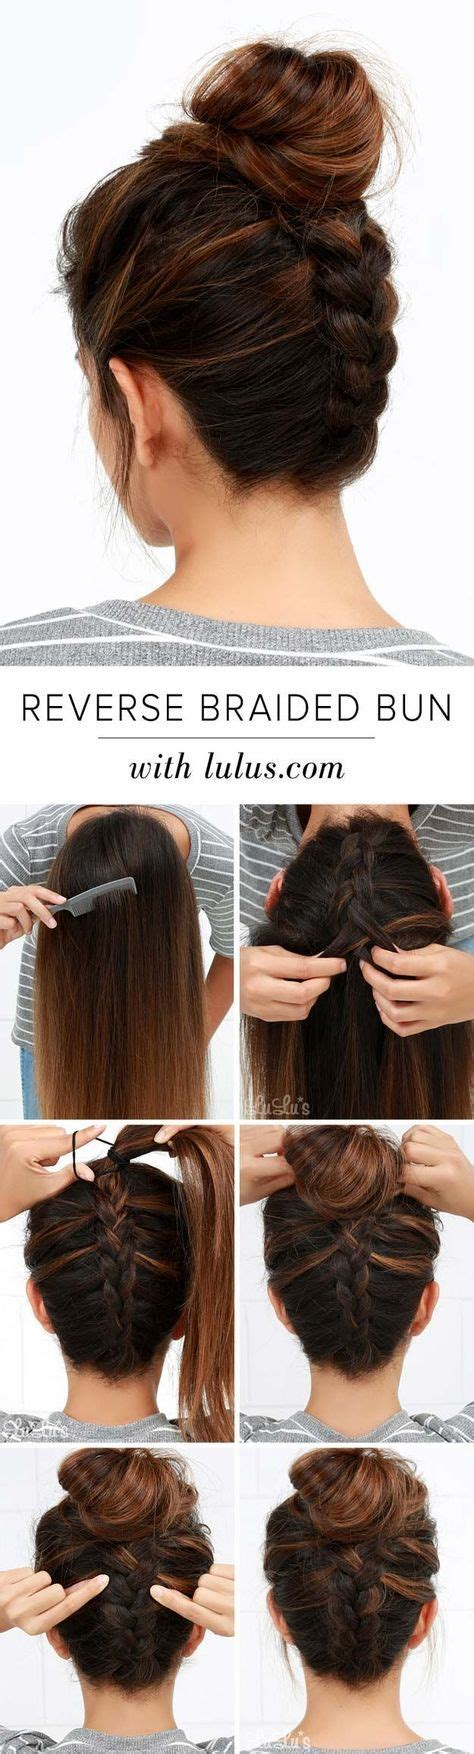 17 best ideas about easy teen hairstyles on pinterest